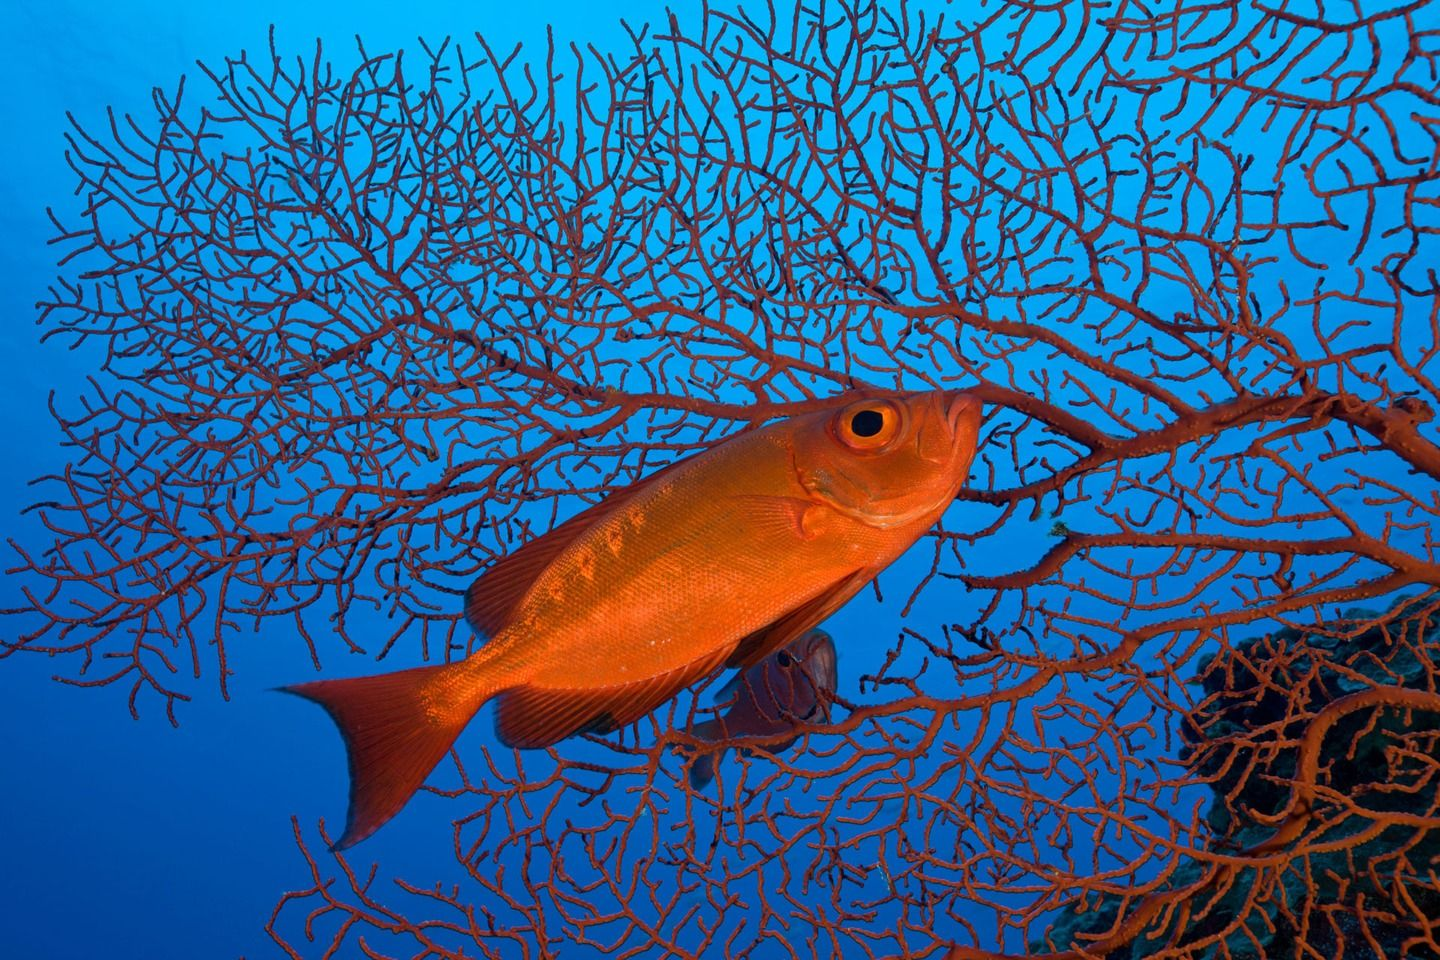 Dazzling photos from a Pacific marine sanctuary larger than California   A red crescent-tail bigeye in Palau. Image: Reinhard Dirscherl/Corbis Images